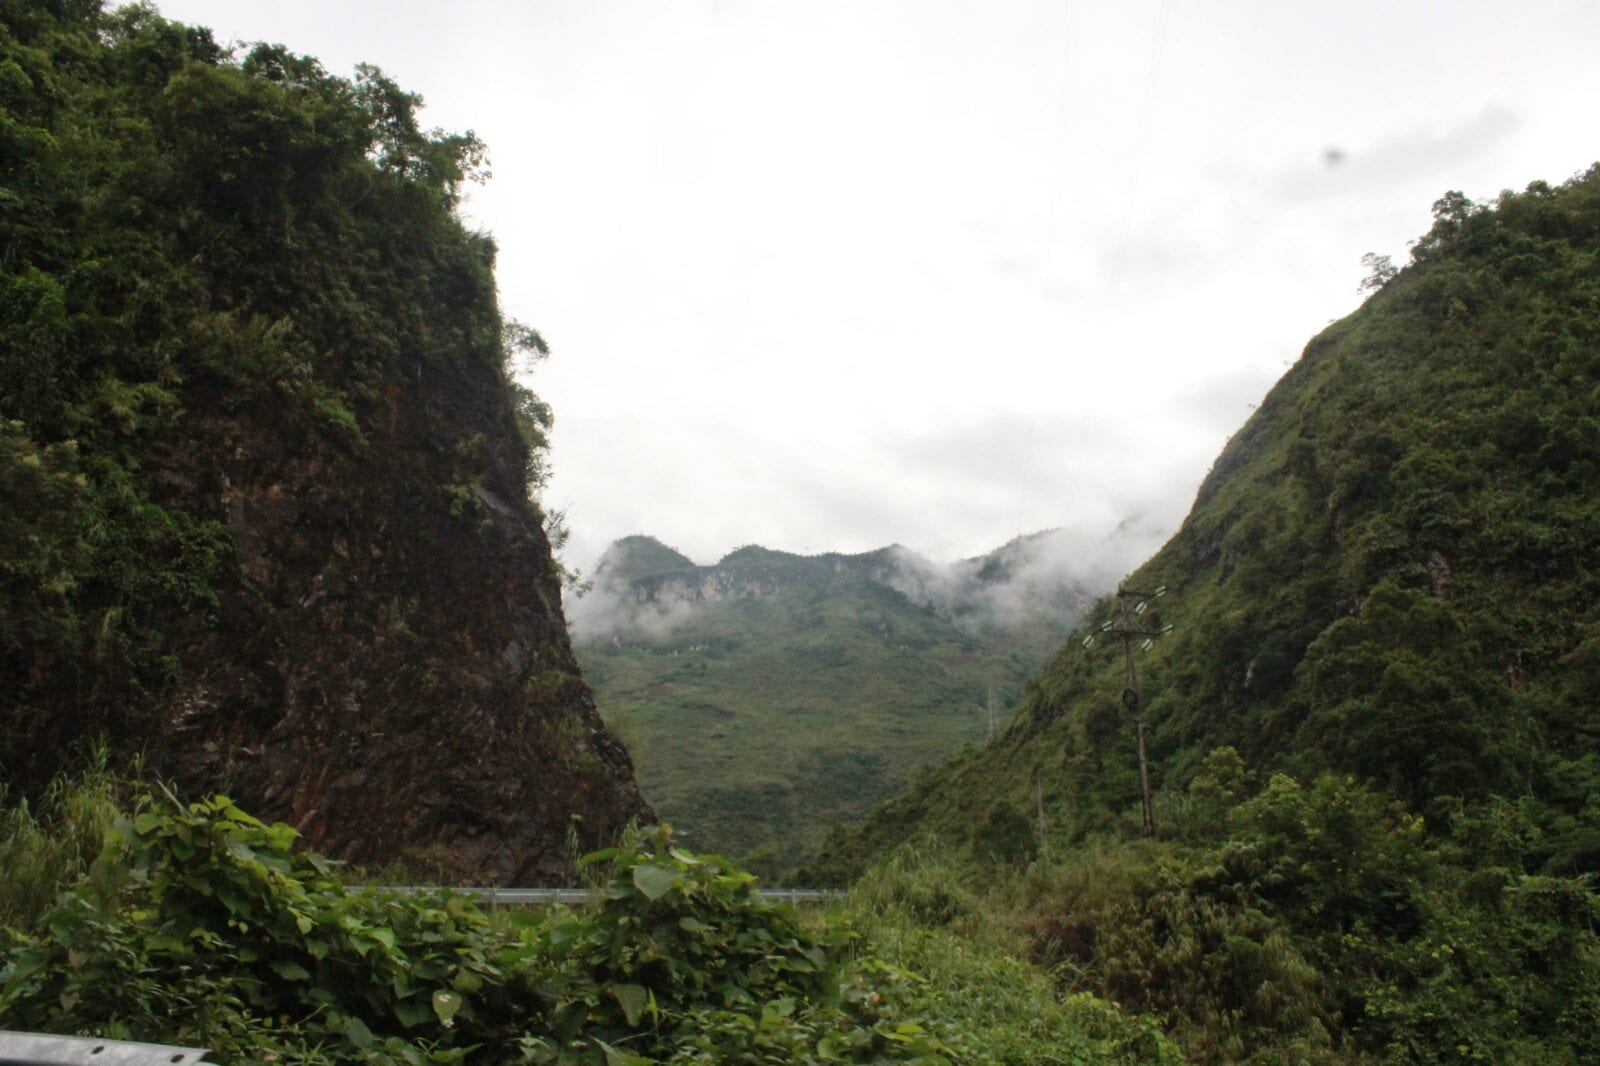 Image from the scenic drive through Ha Giang Province in Vietnam